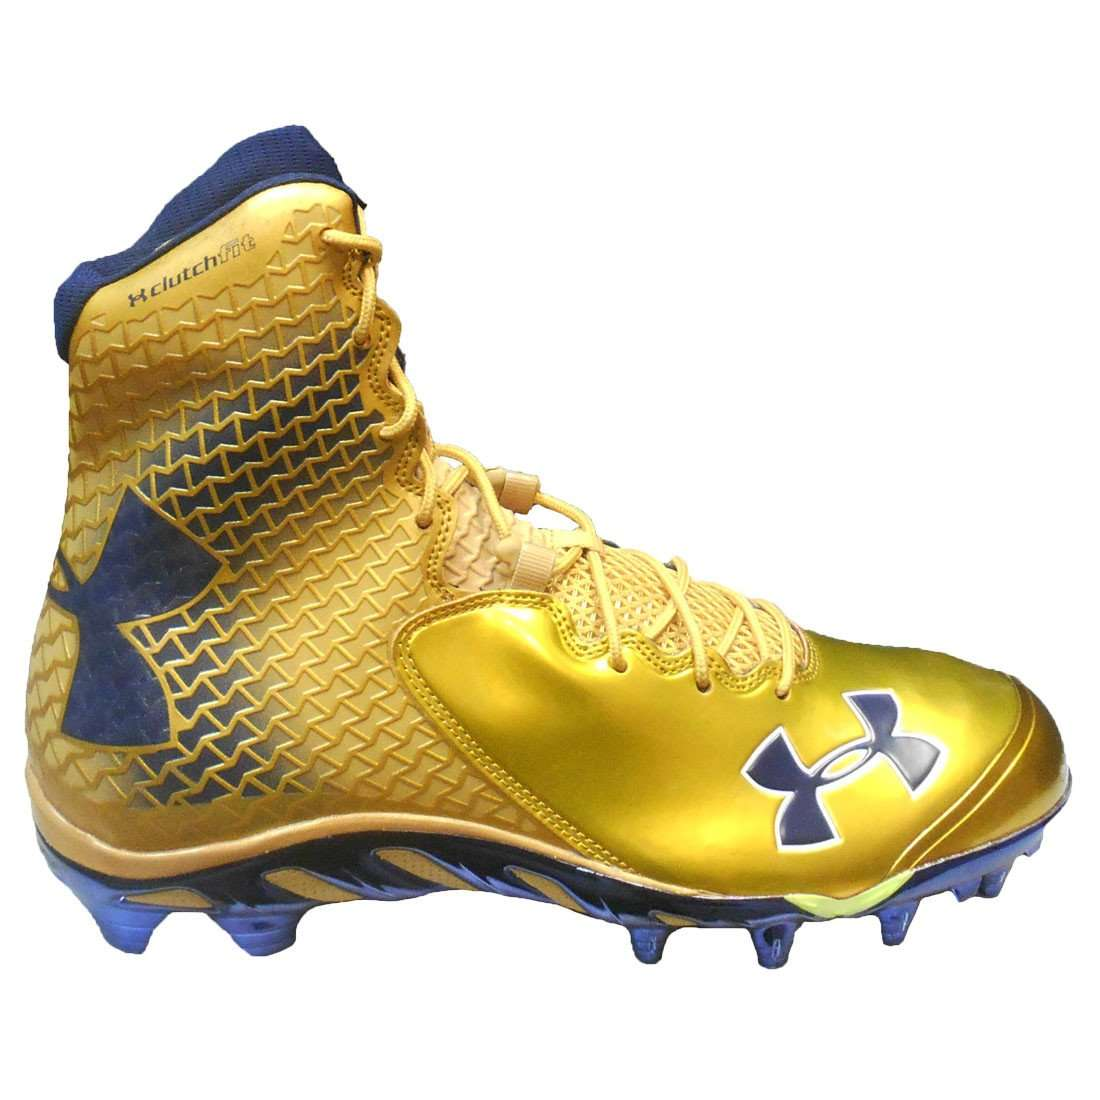 new styles 0a112 4f2e7 Under Armour Team Spine Brawler Molded Football Cleats - League Outfitters